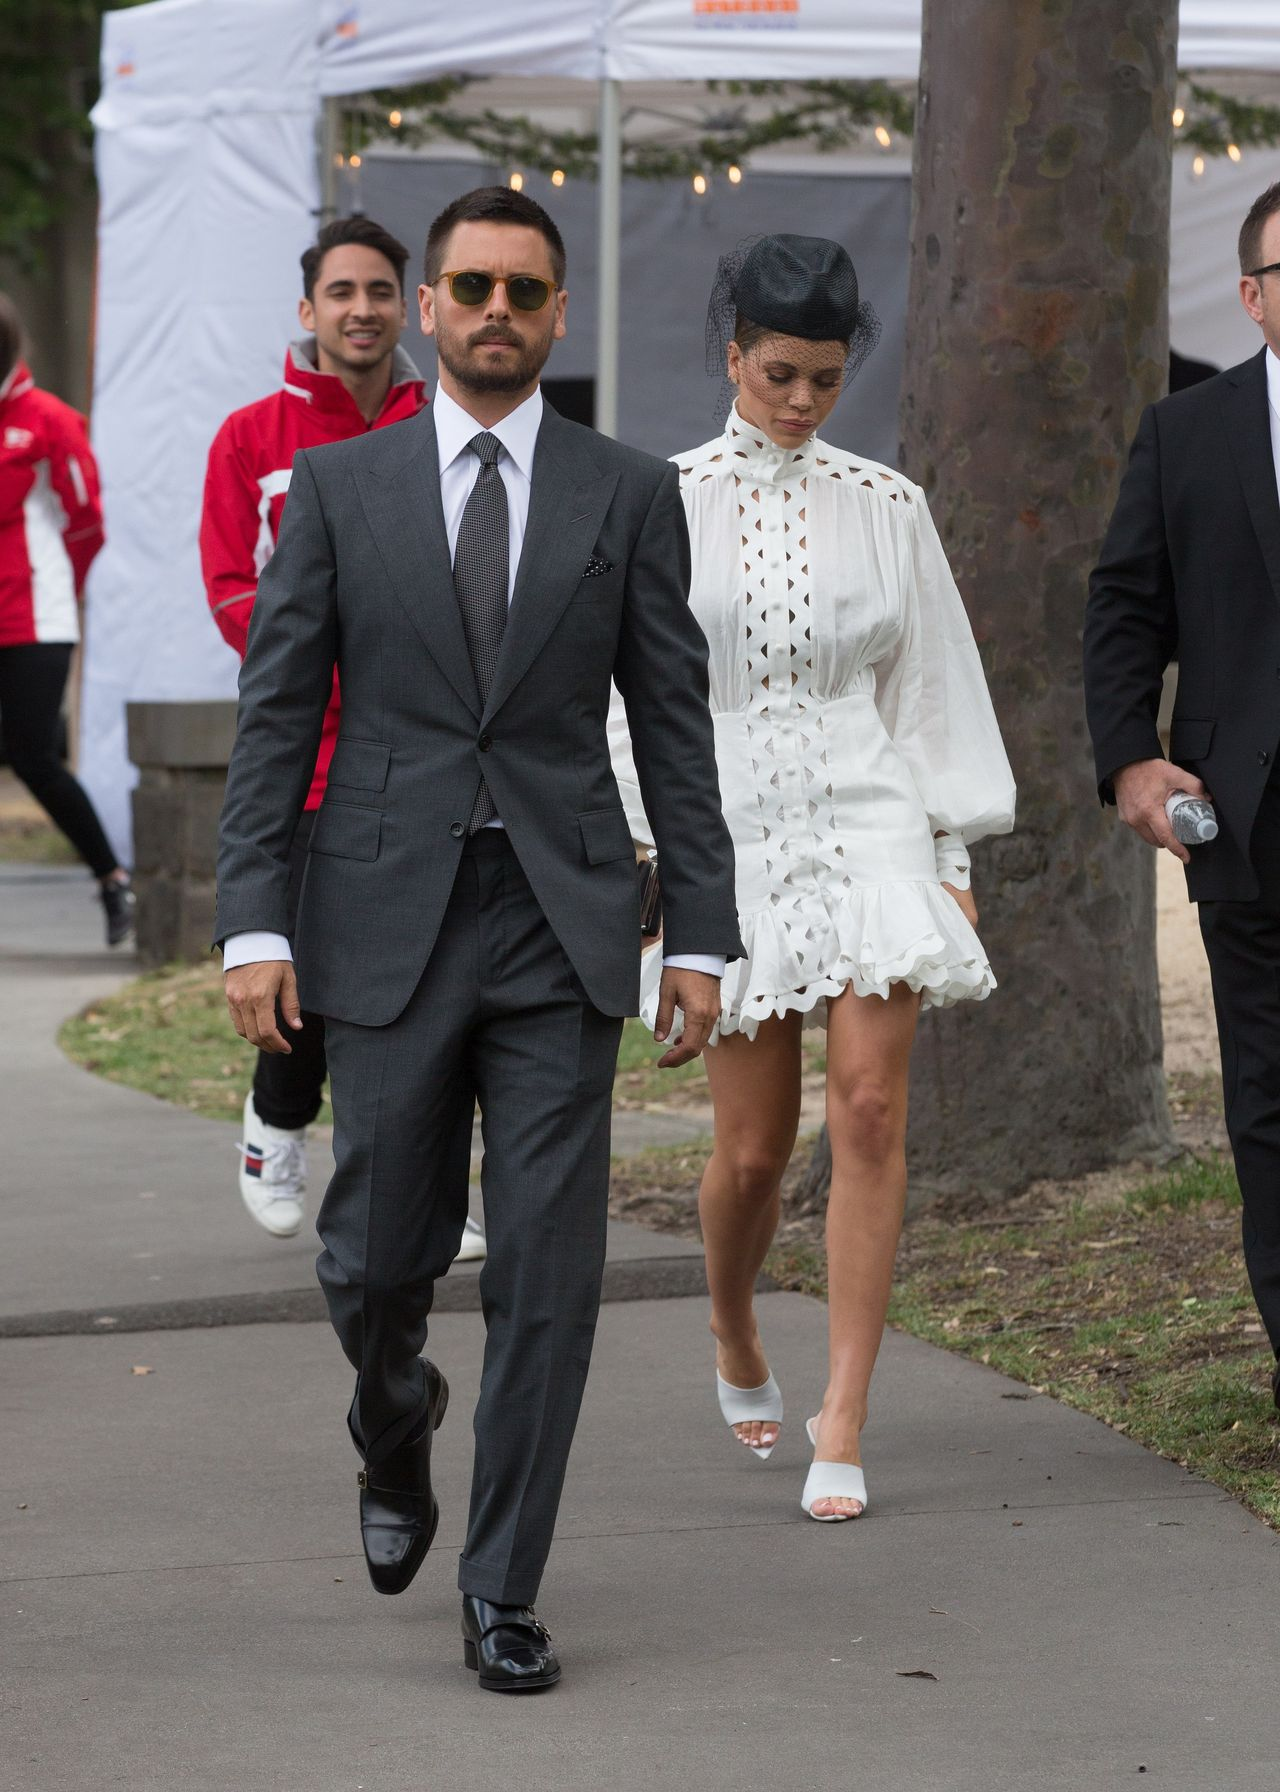 EXCLUSIVE: Scott Disick and Sofia Richie board a helicopter to the Derby Day races in Melbourne